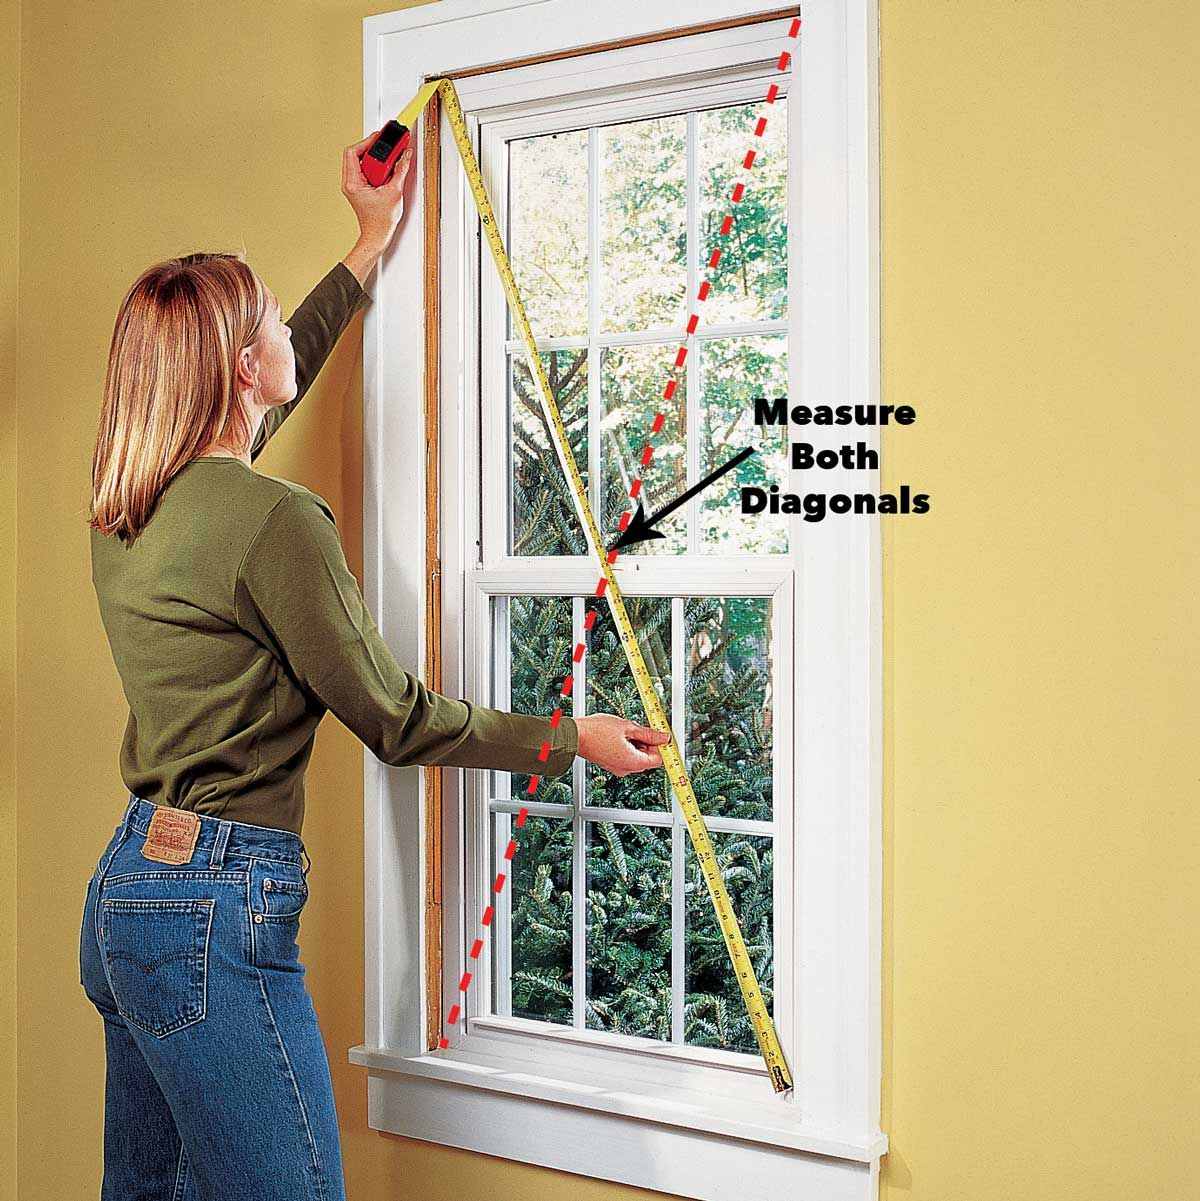 How To Install A Window Diy Window Replacement Vinyl Window Installation Window Replacement